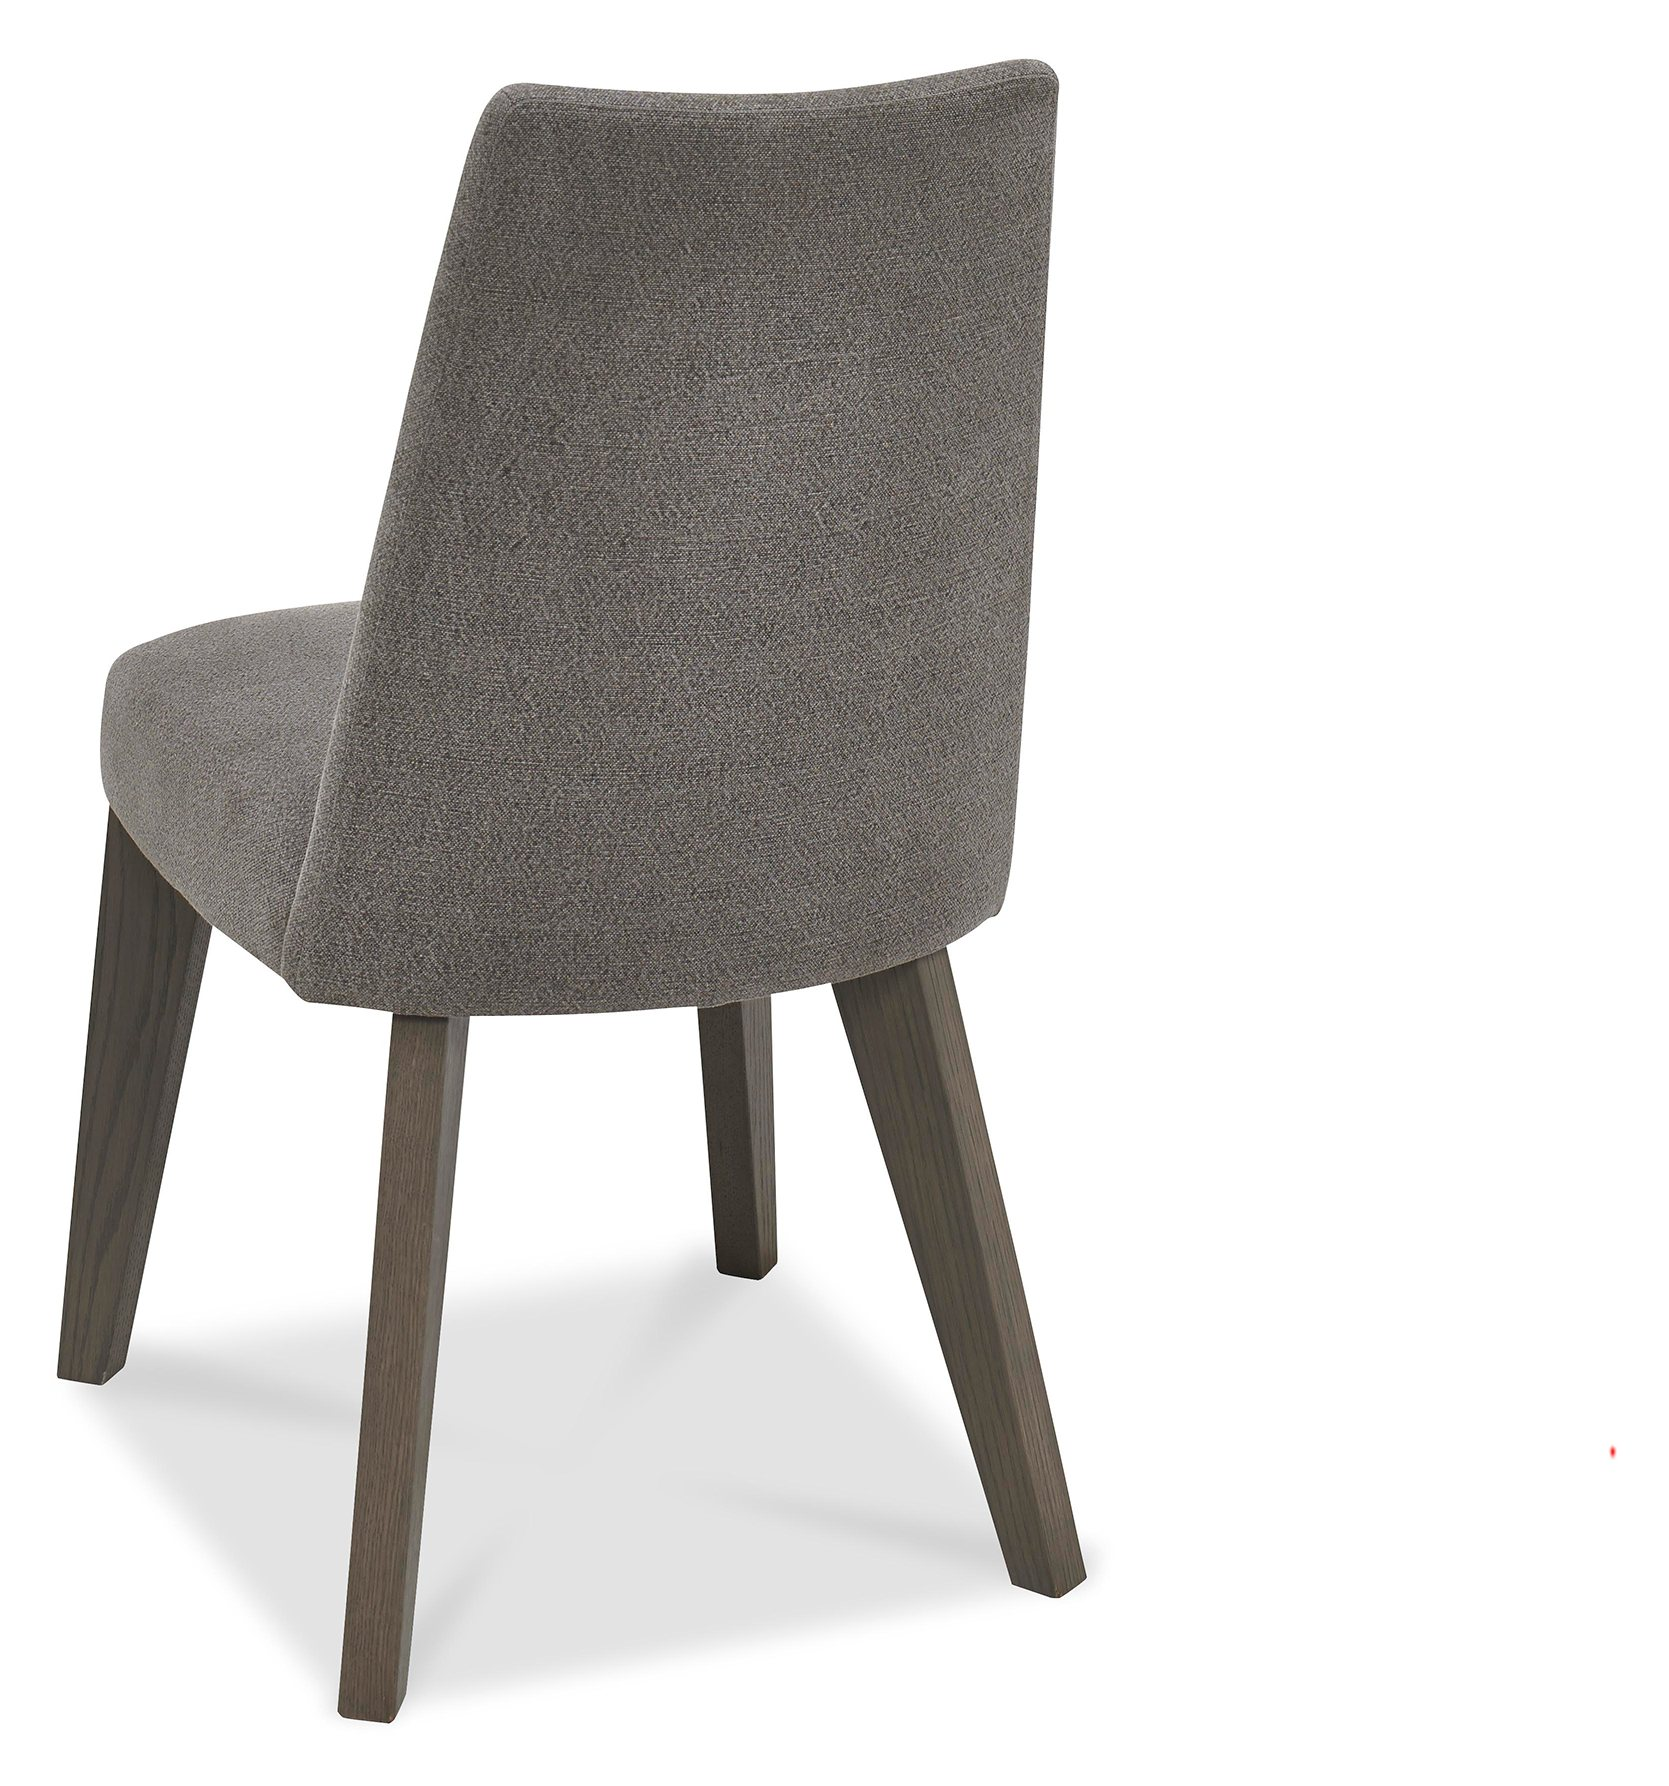 CARELL DINING CHAIR SMOKE GREY - BACK DETAIL